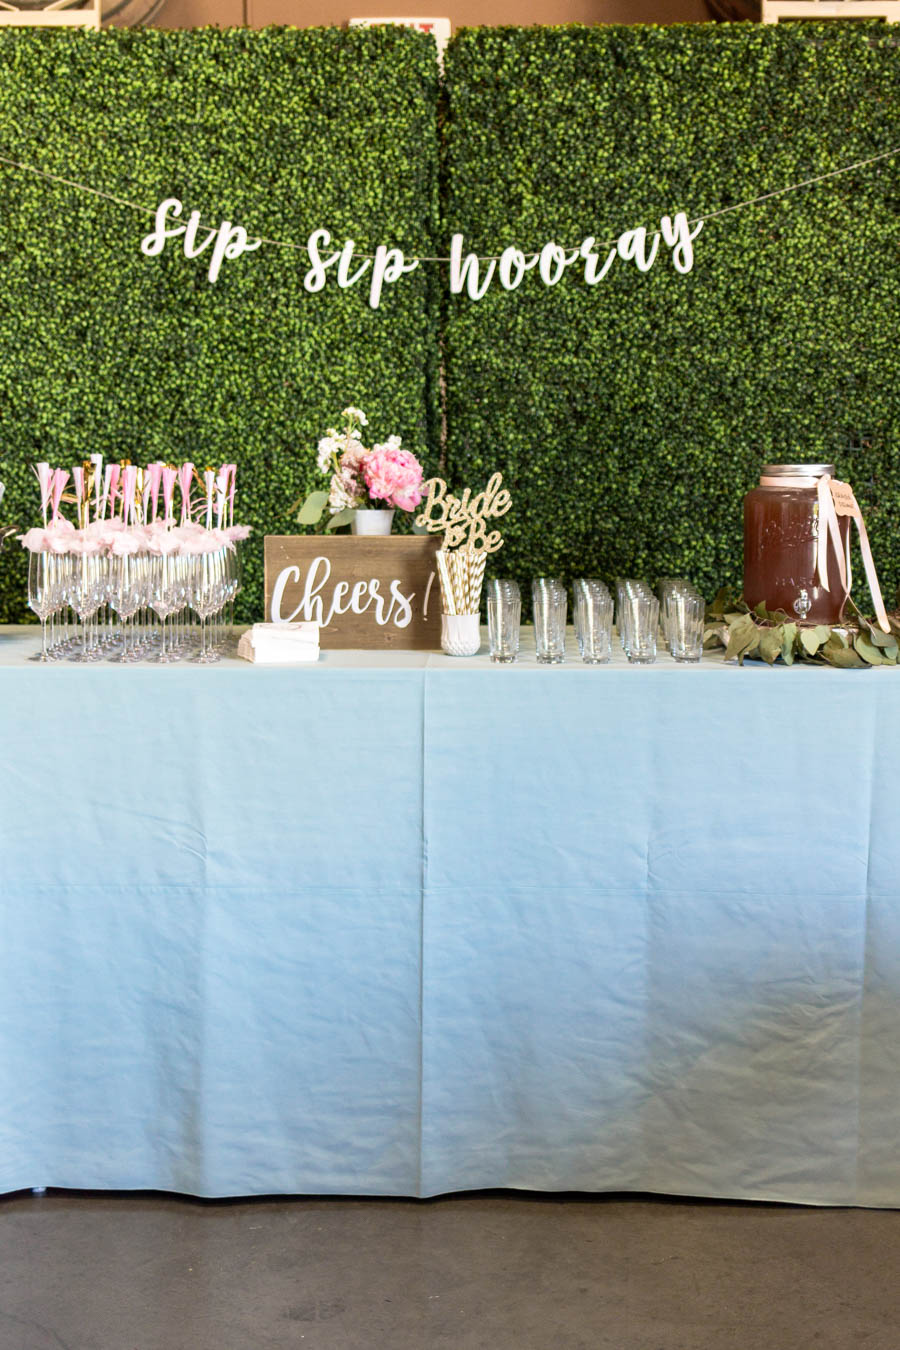 My Best Friends Bridal Shower | A Married Adventure